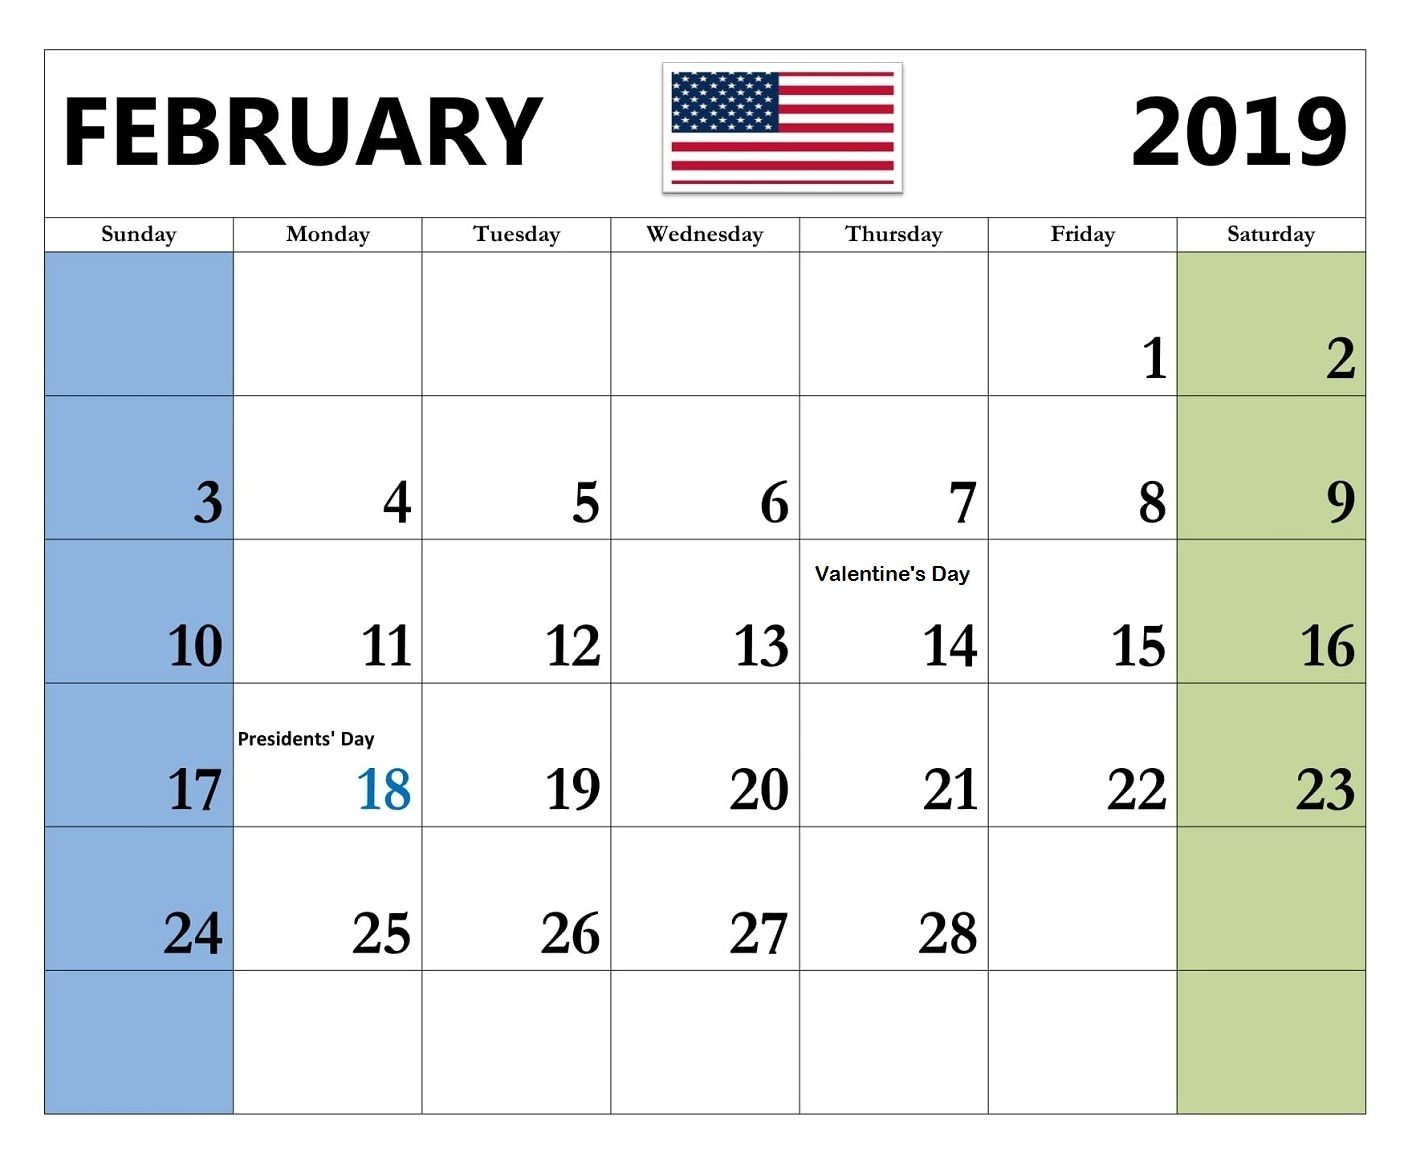 february 2019 calendar pdf excel word free download::February 2019 Calendar Word